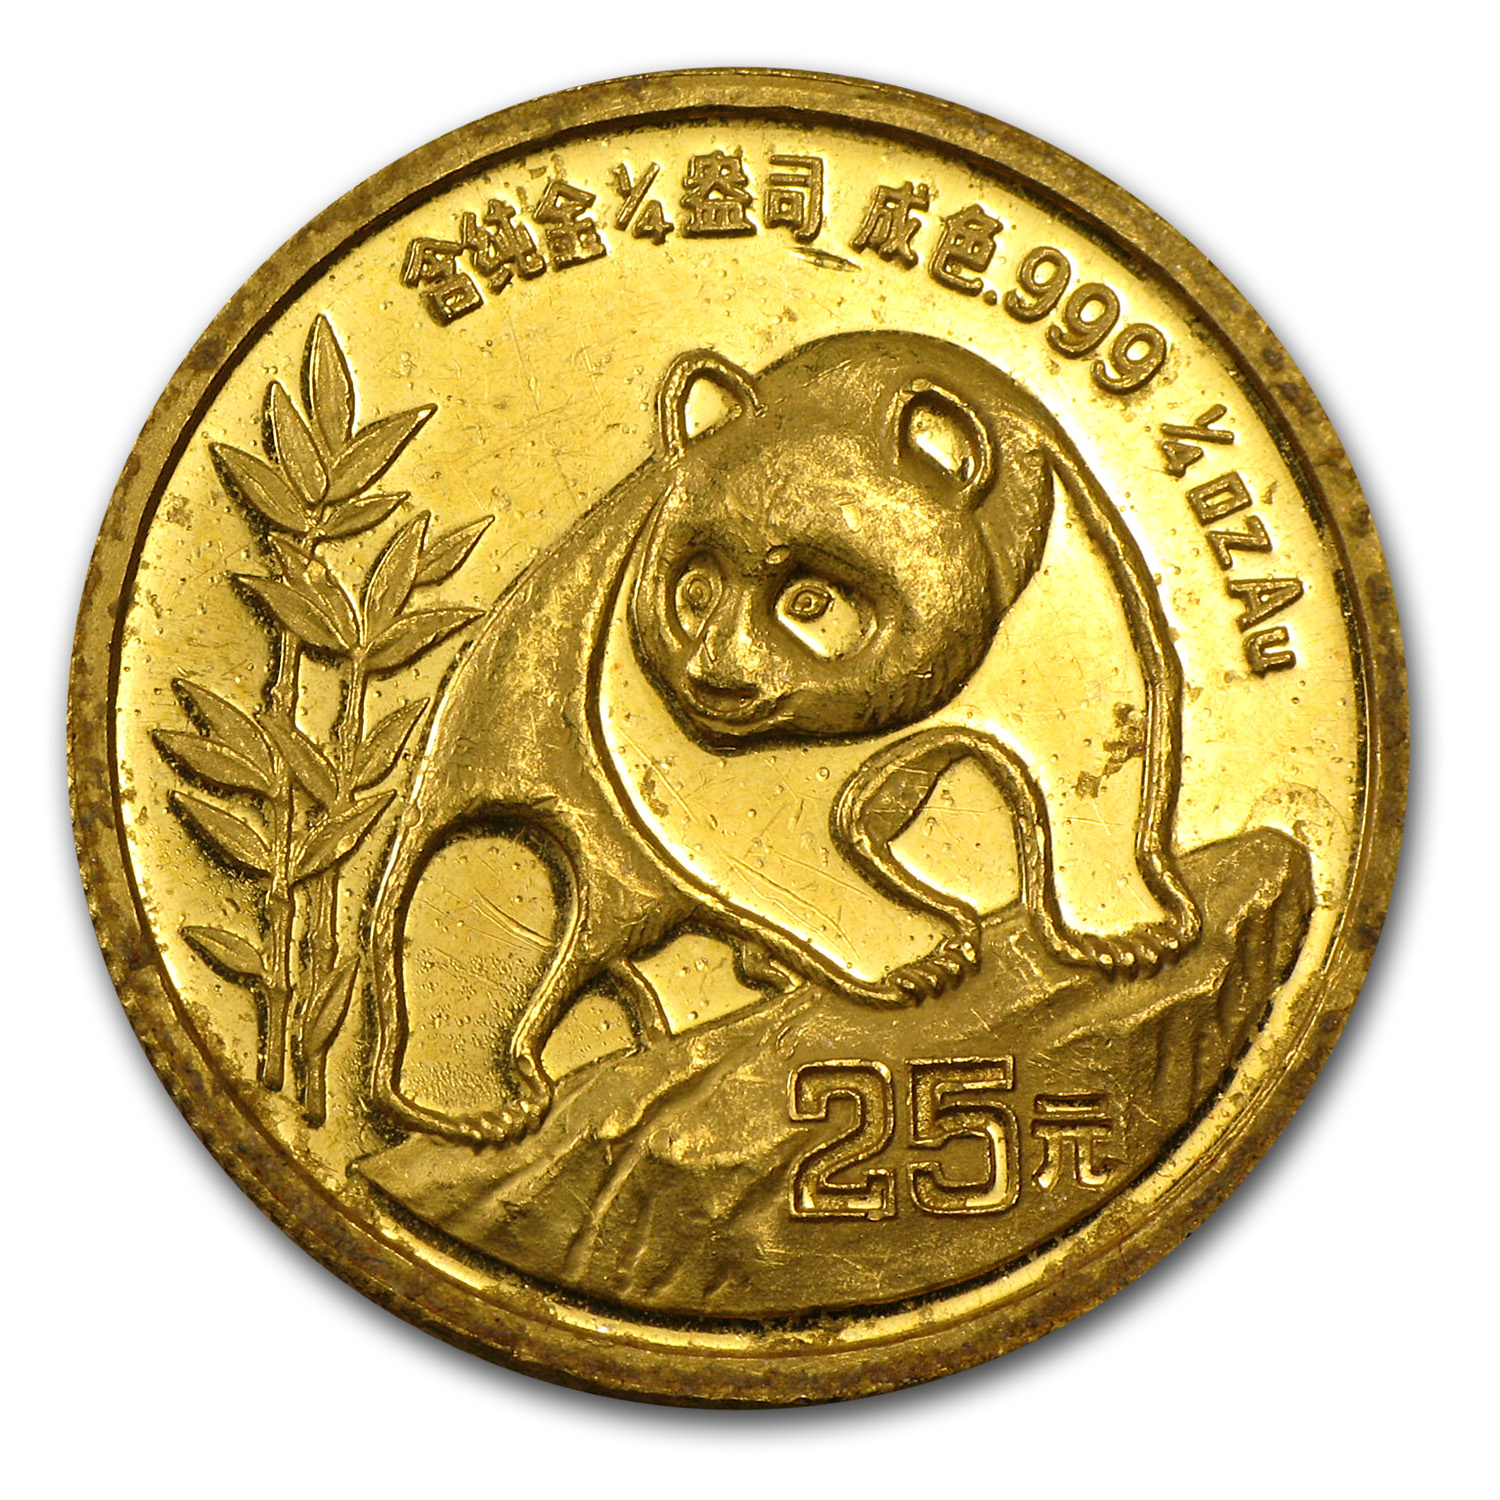 1/4 oz Gold Chinese Panda (Scruffy &/or Cleaned)